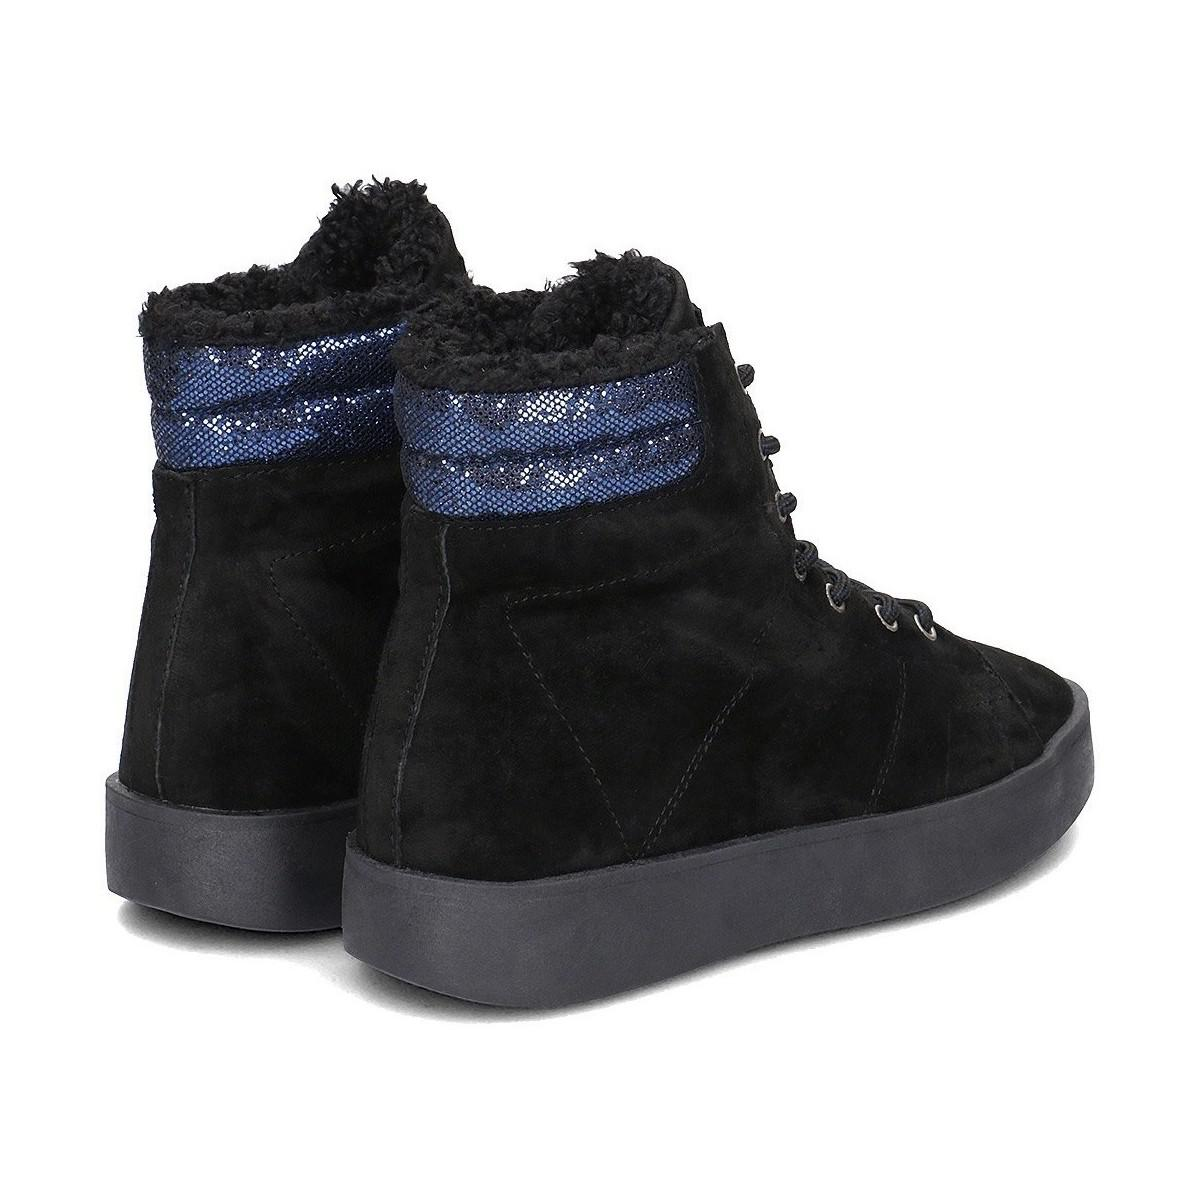 Save In Boots Women's Pepe Jeans in Black Pls30774 Snow Black zUpqC